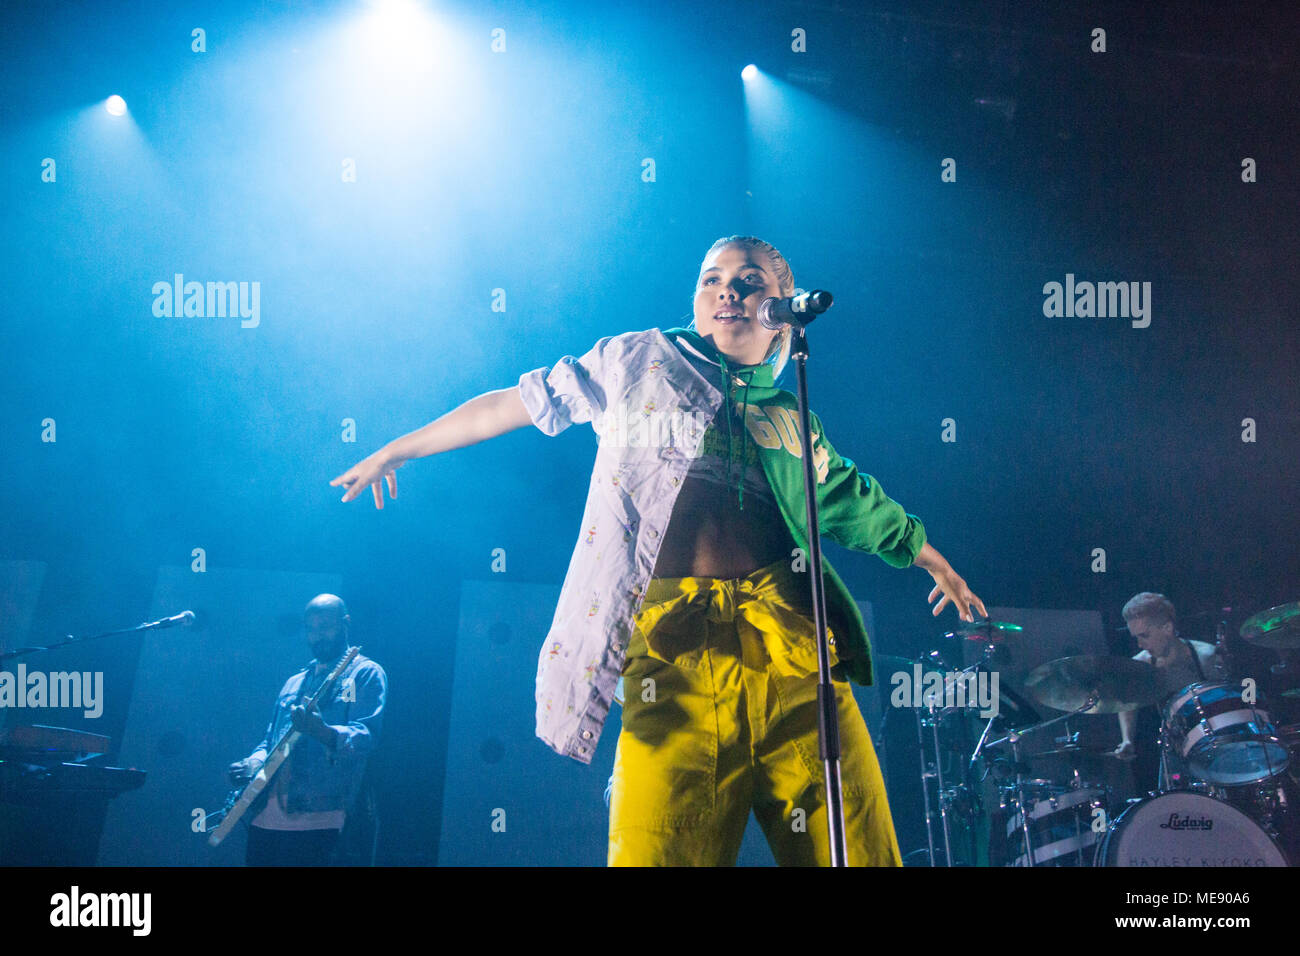 Vancouver, BC / Canada - April 18th 2018: American singer-songwriter Hayley Kiyoko performing at The Vogue Theatre in Vancouver. Credit: Jamie Taylor - Stock Image